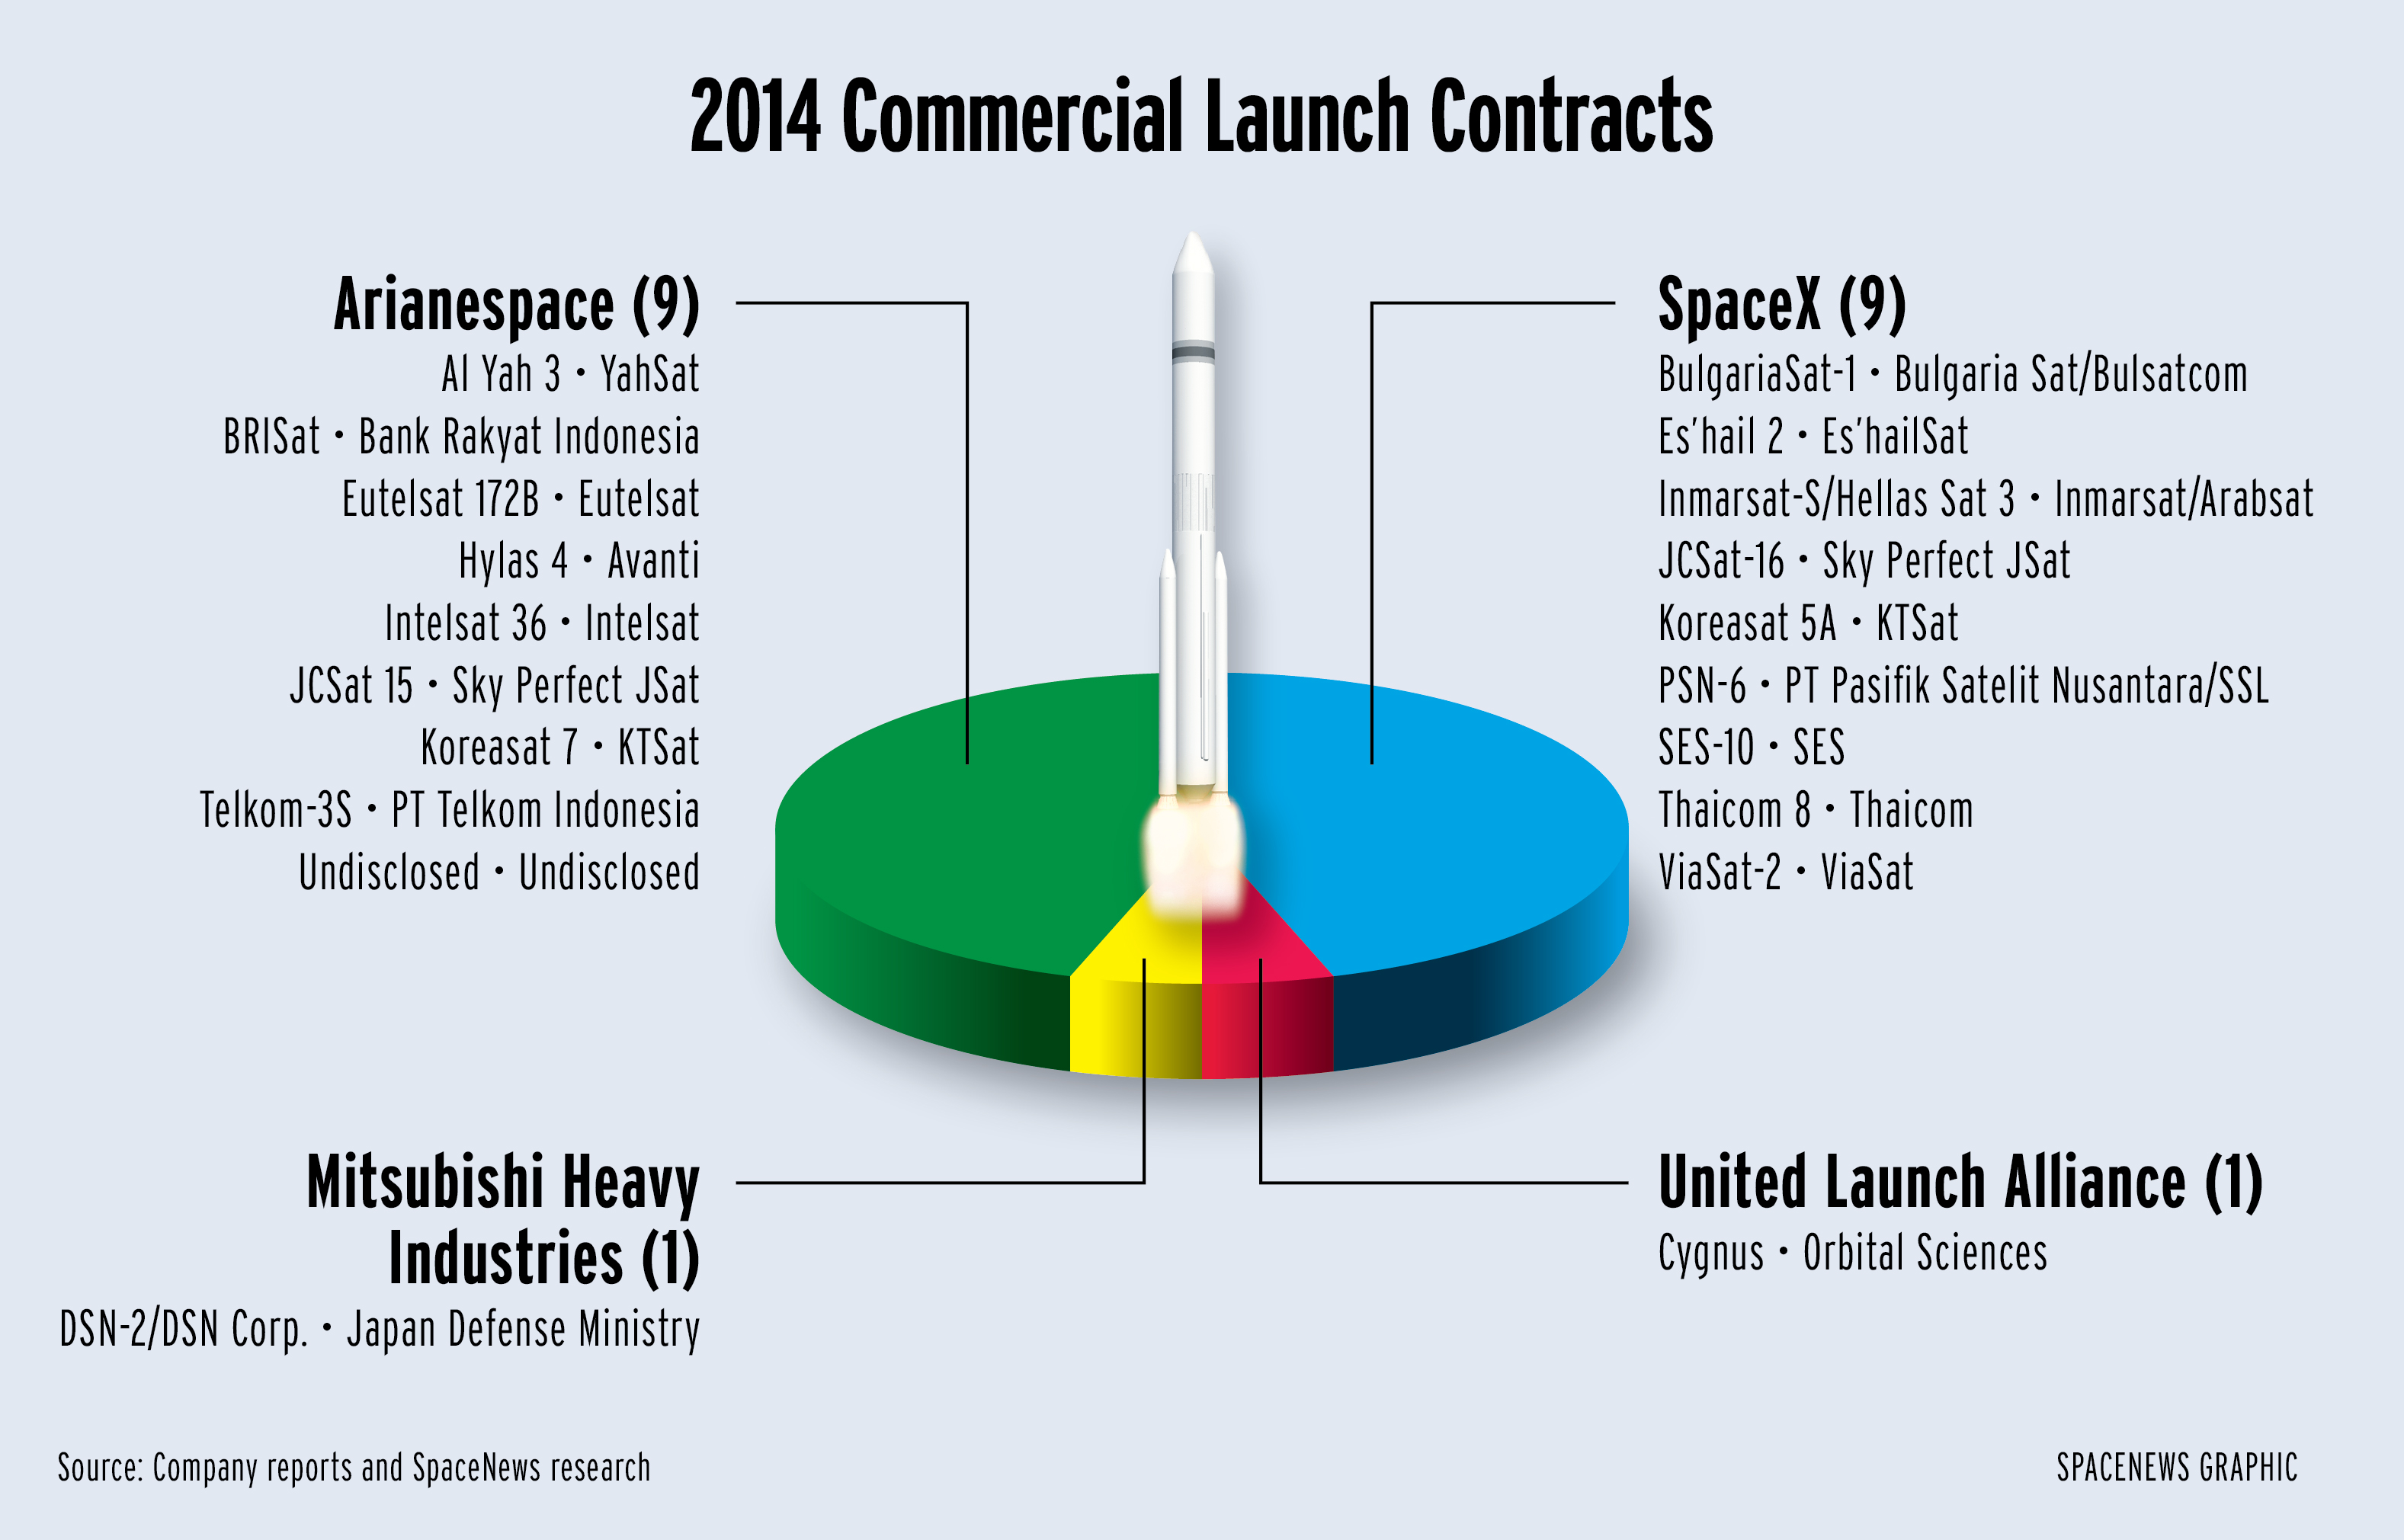 of the 19 commercial launch contracts competitively awarded in 2014 arianespace and spacex took home